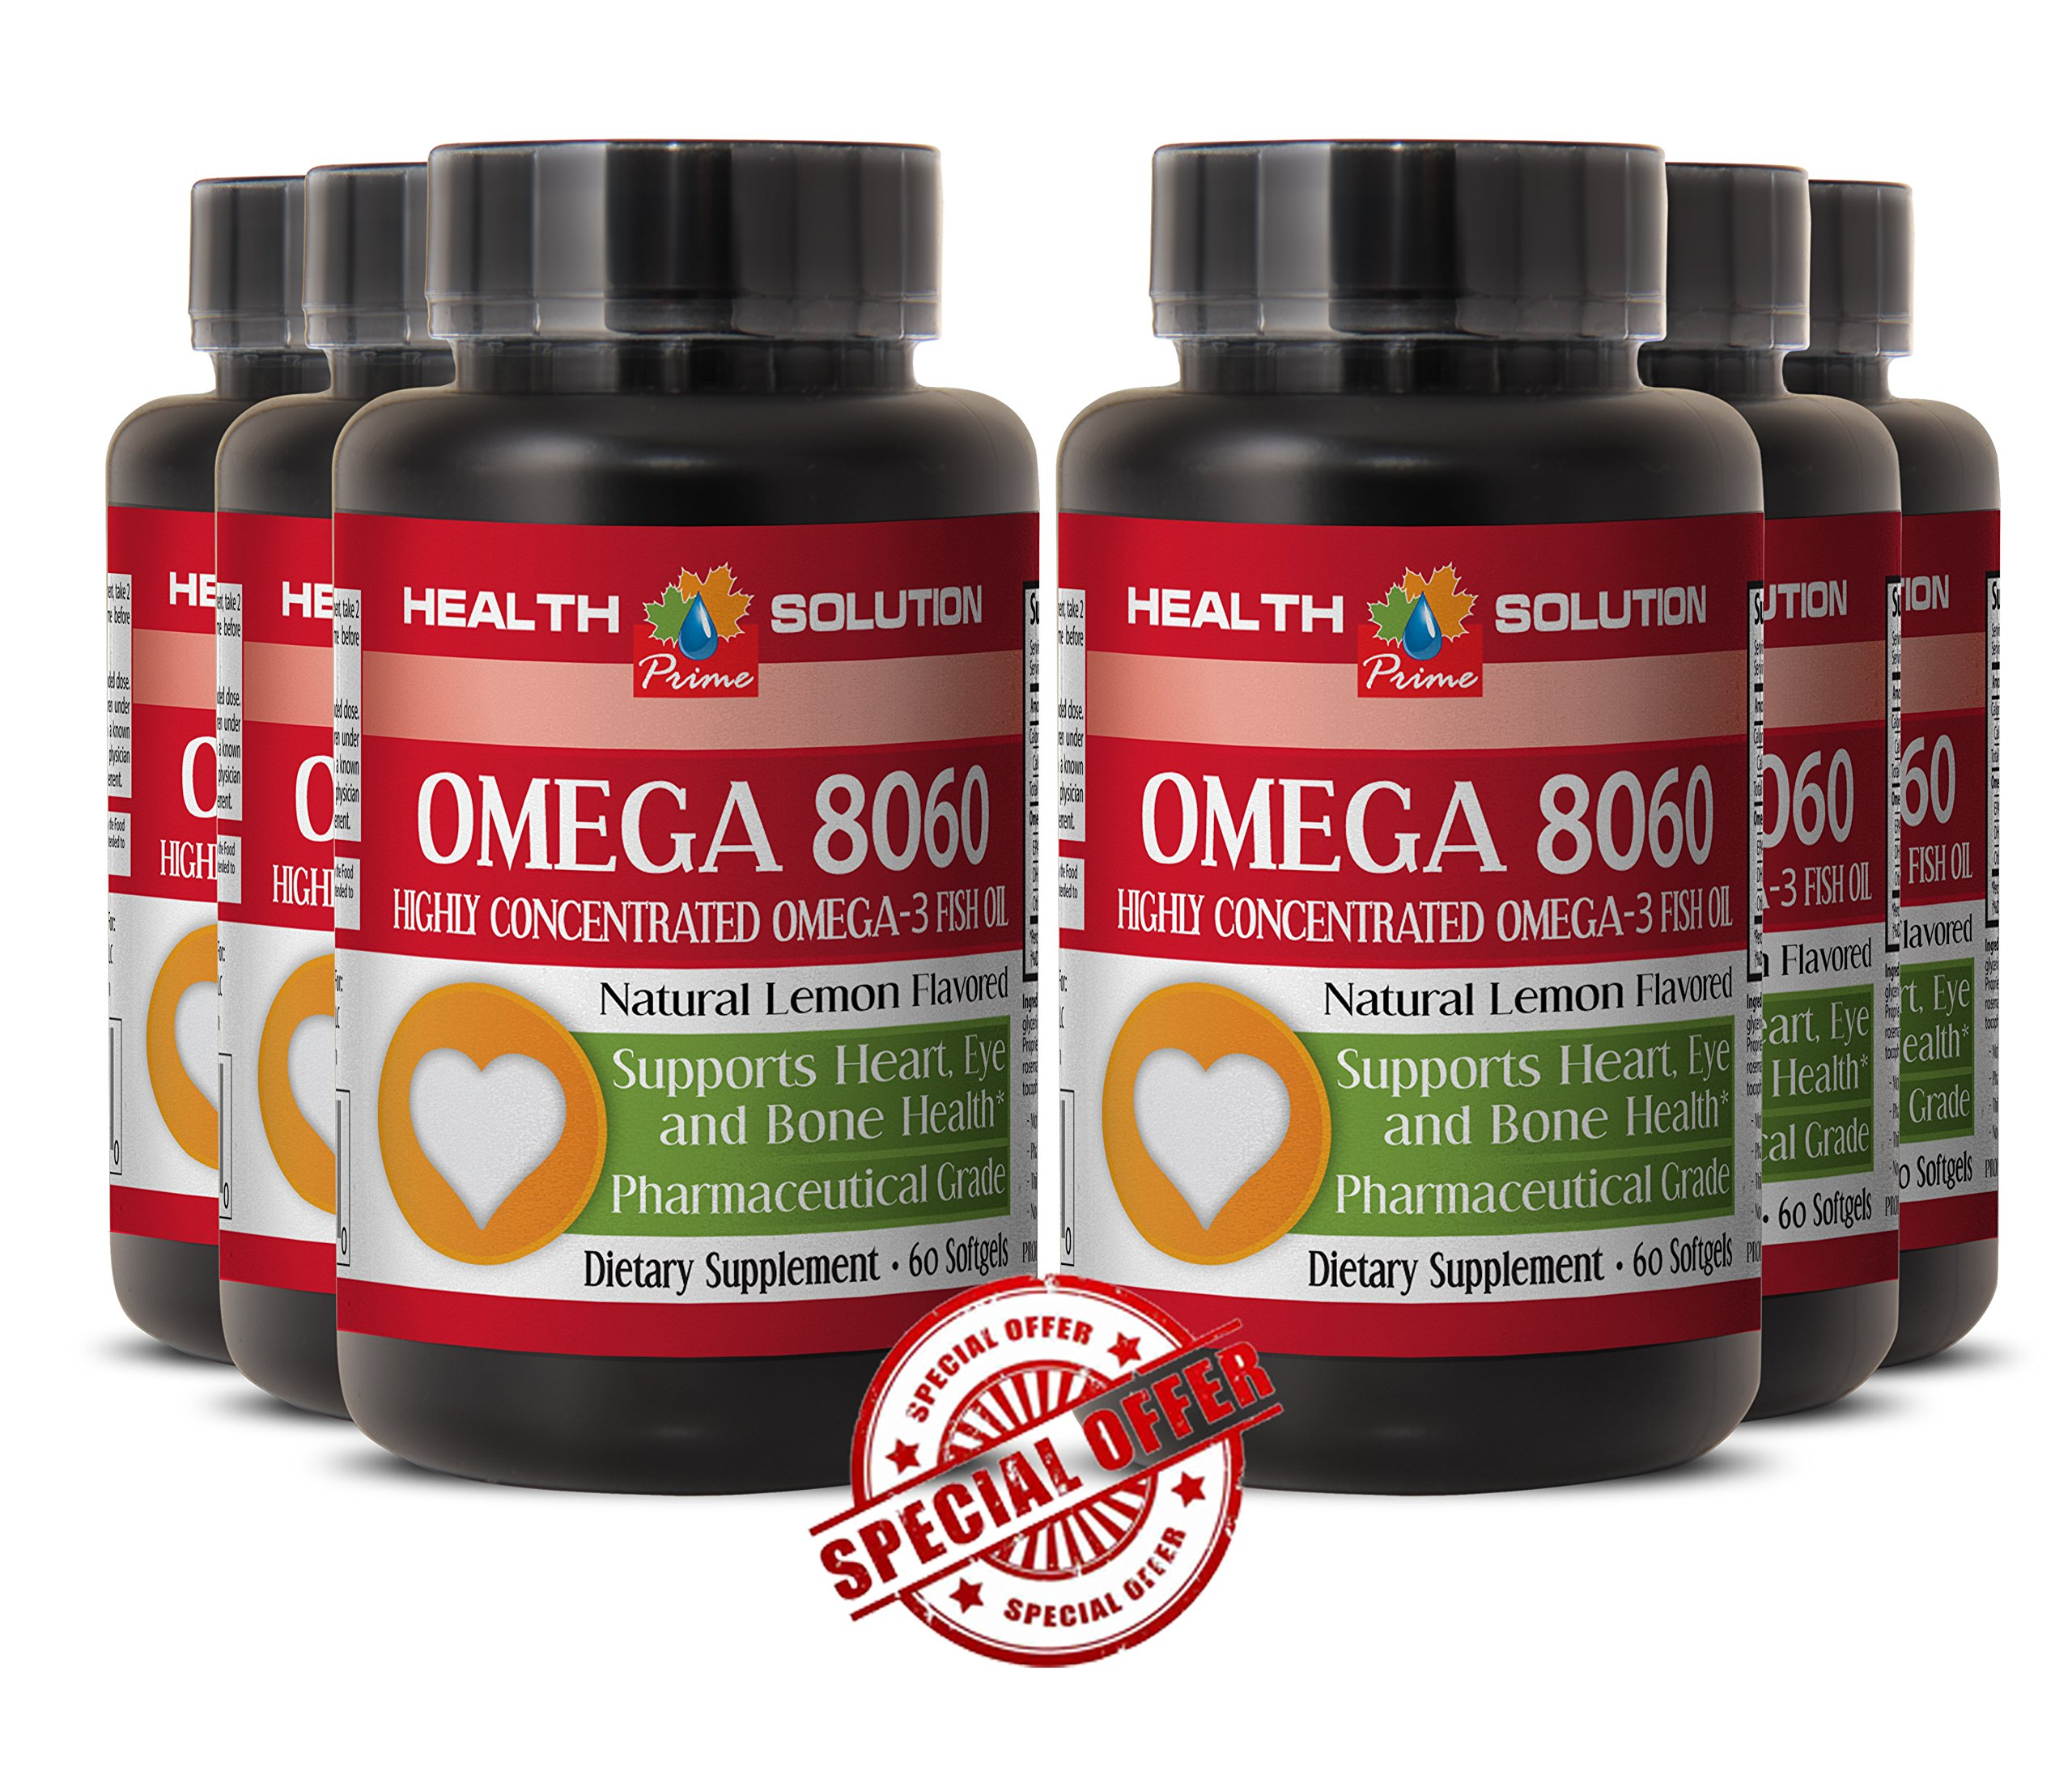 Omega 3 with vitamin d - OMEGA 8060 OMEGA-3 FATTY ACIDS - increase development of hair (6 Bottles)